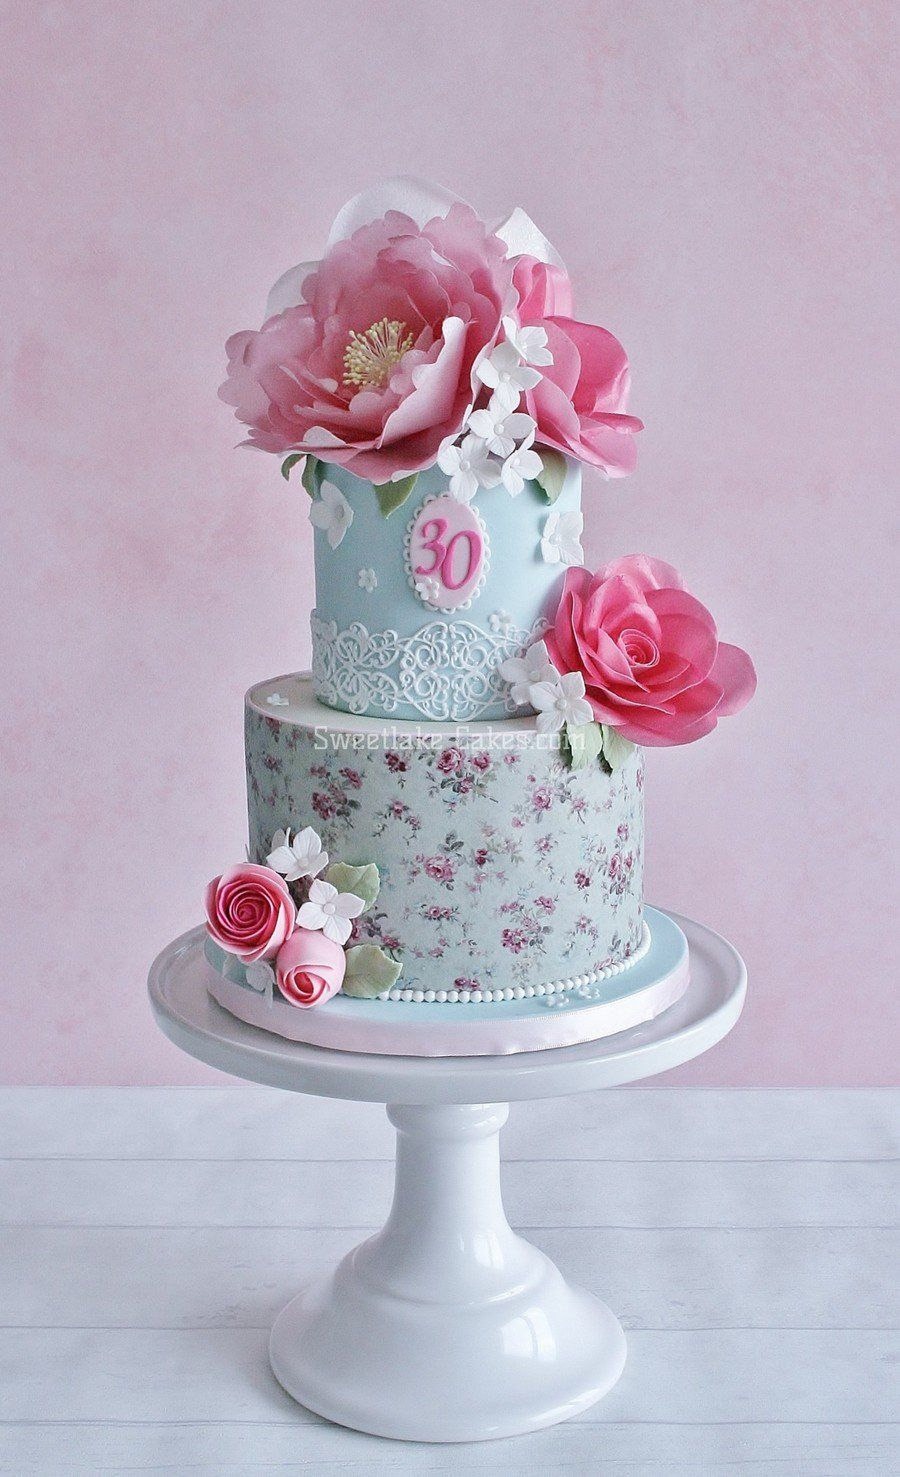 Shabby Chic Wafer Paper Flower Cake I Made A Shabby Chic Cake With